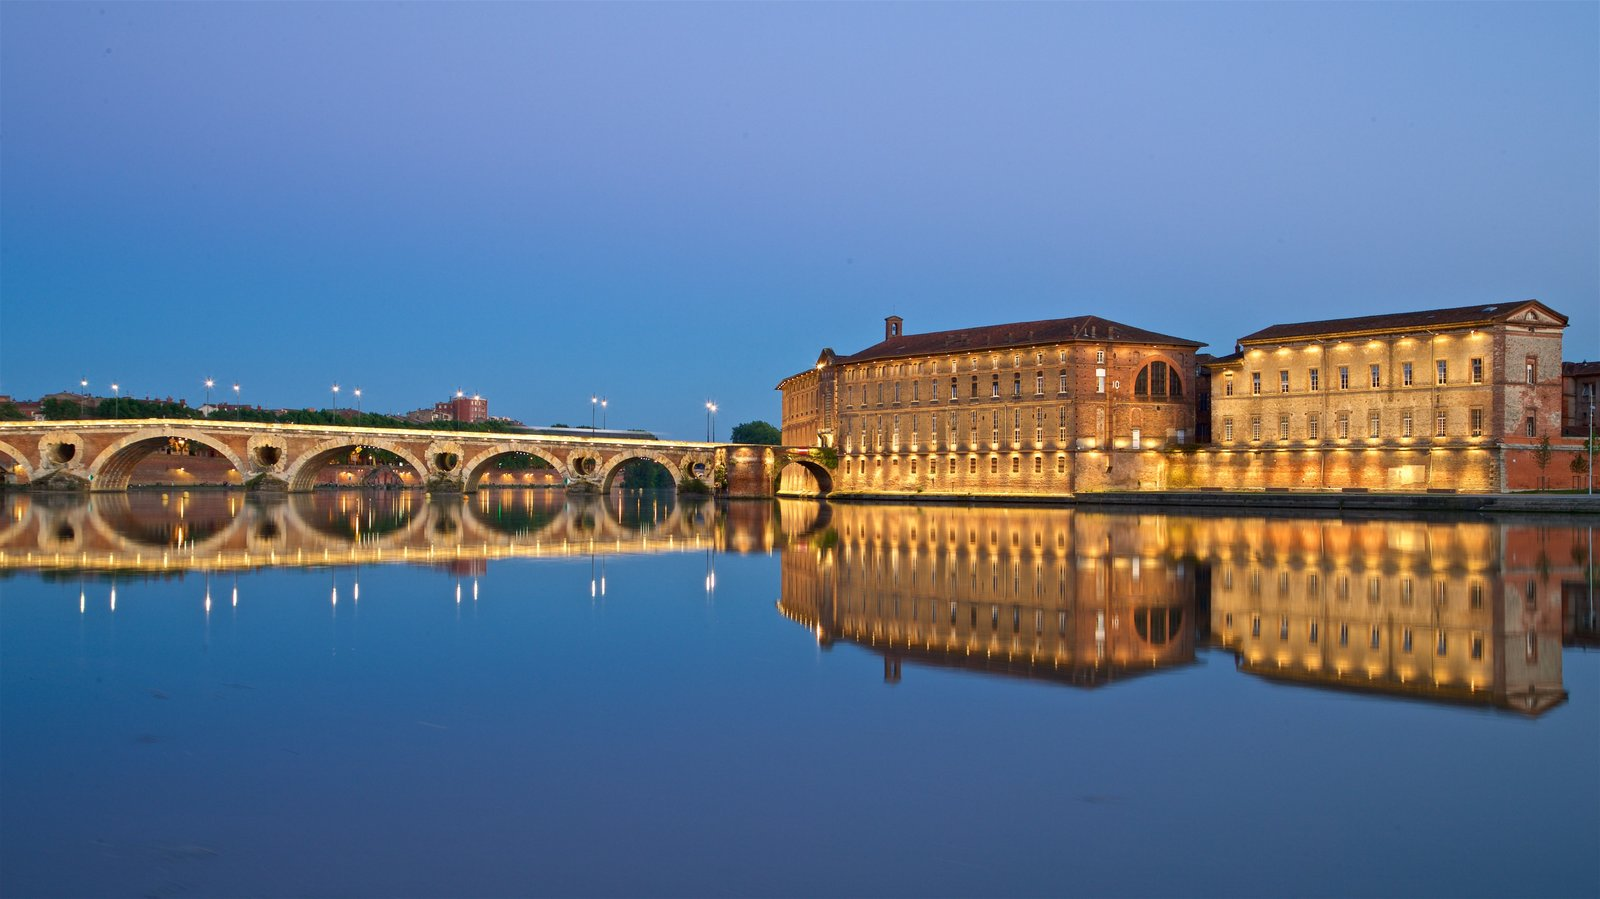 Pont Neuf showing heritage architecture, night scenes and a lake or waterhole